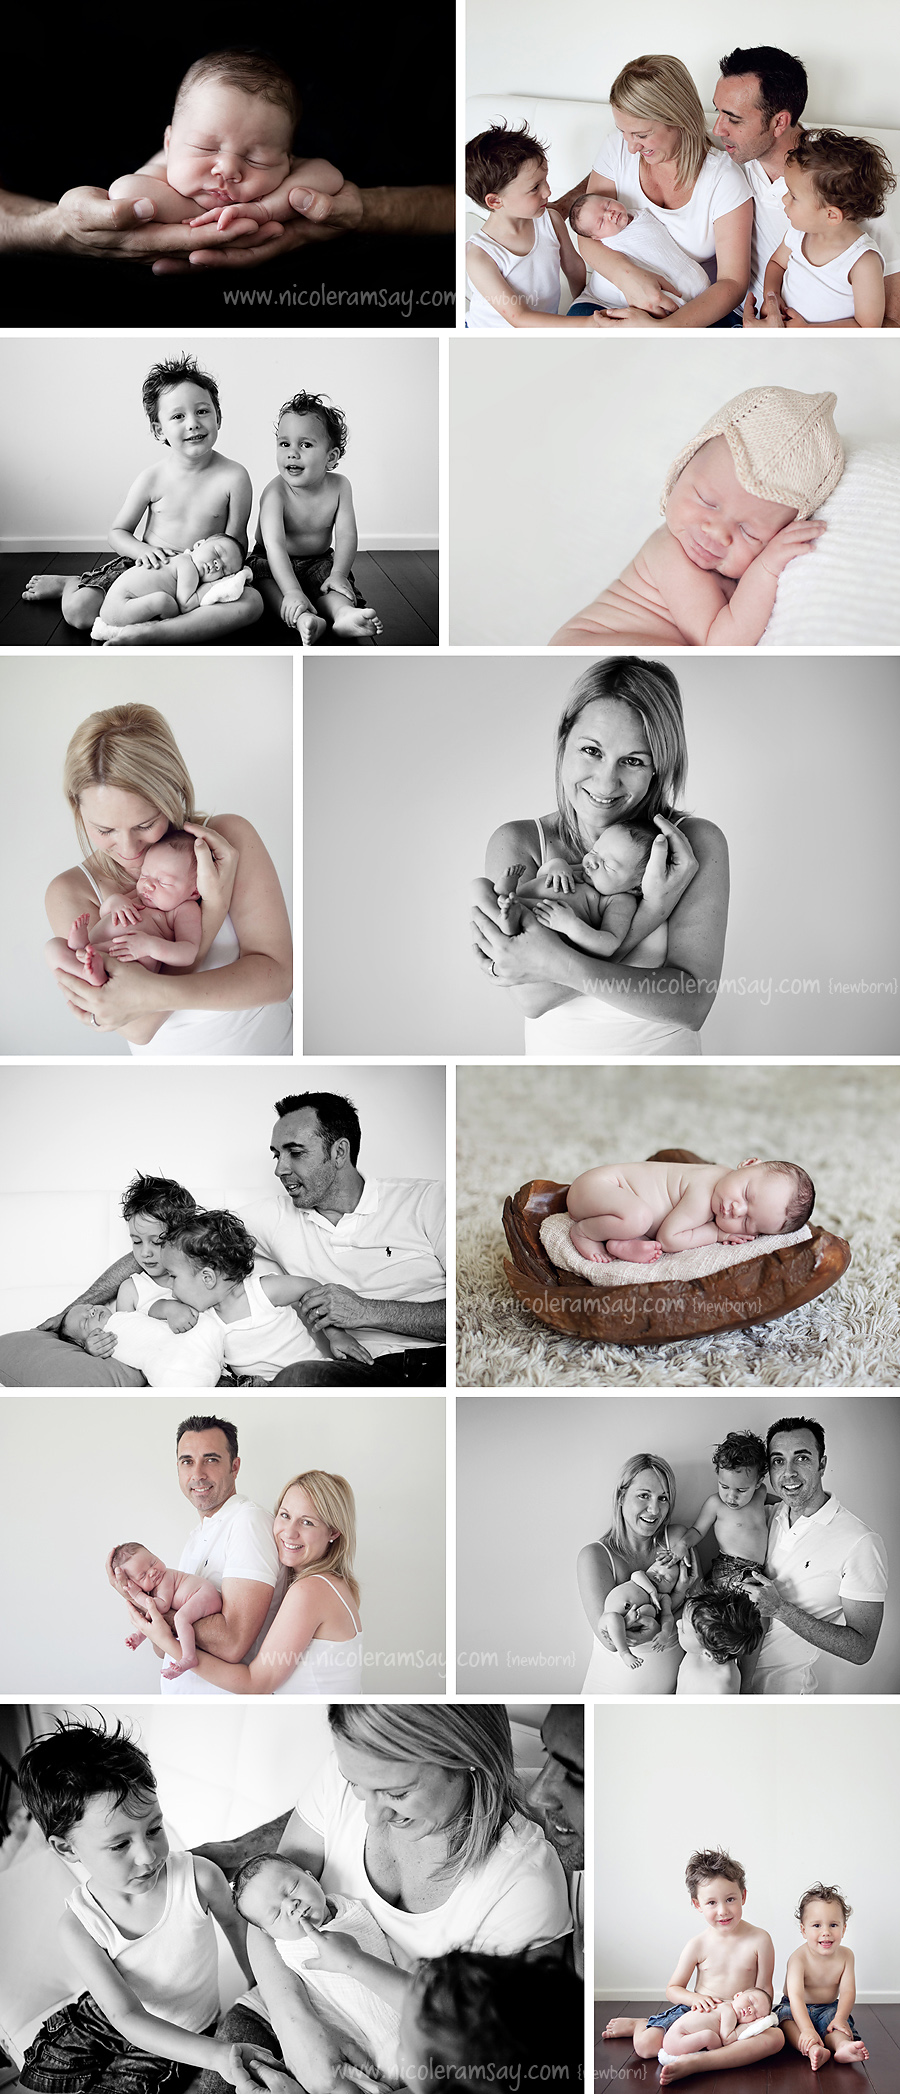 Brisbane Newborn Photographer - www.nicoleramsay.com/blog